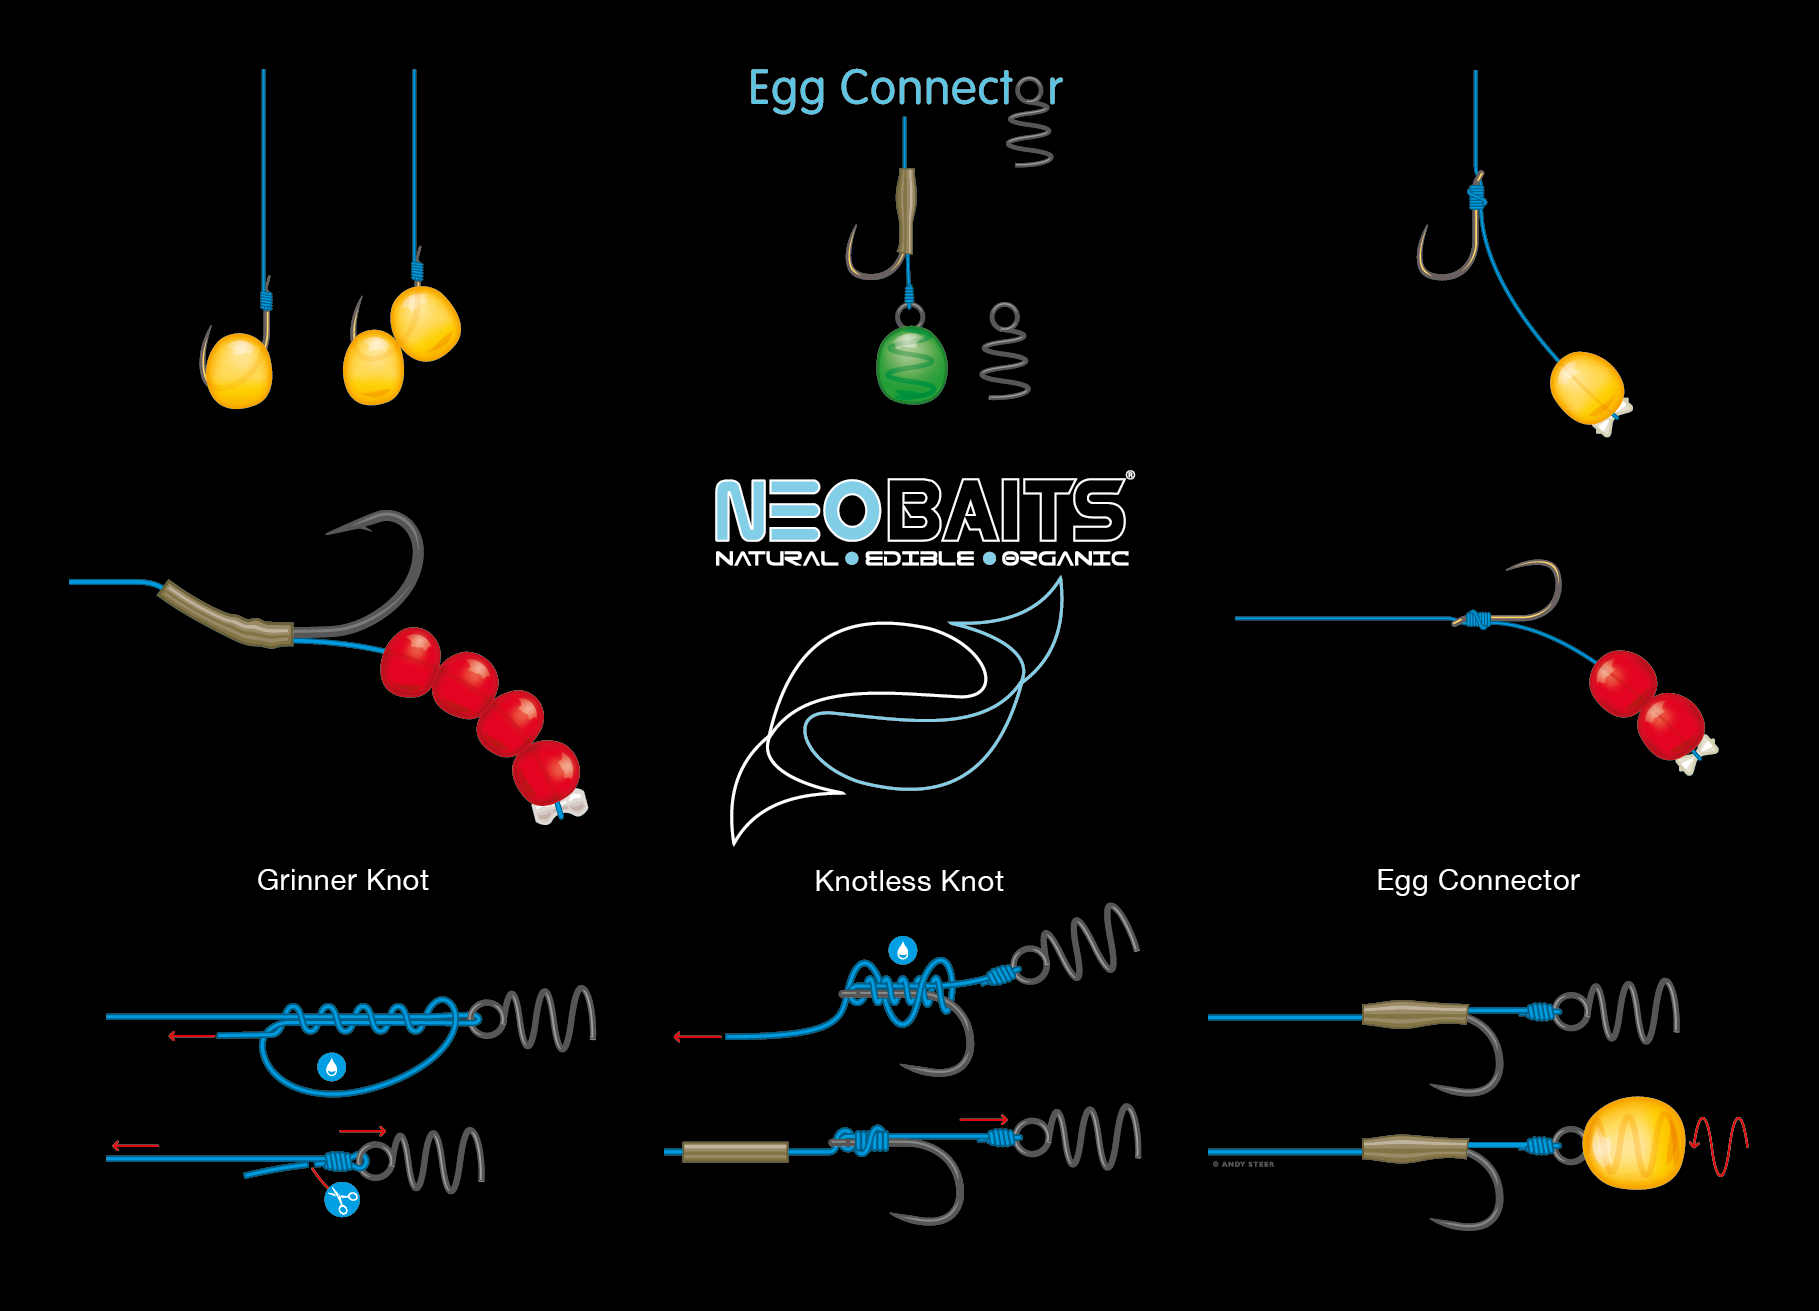 NeoBaits Egg connector